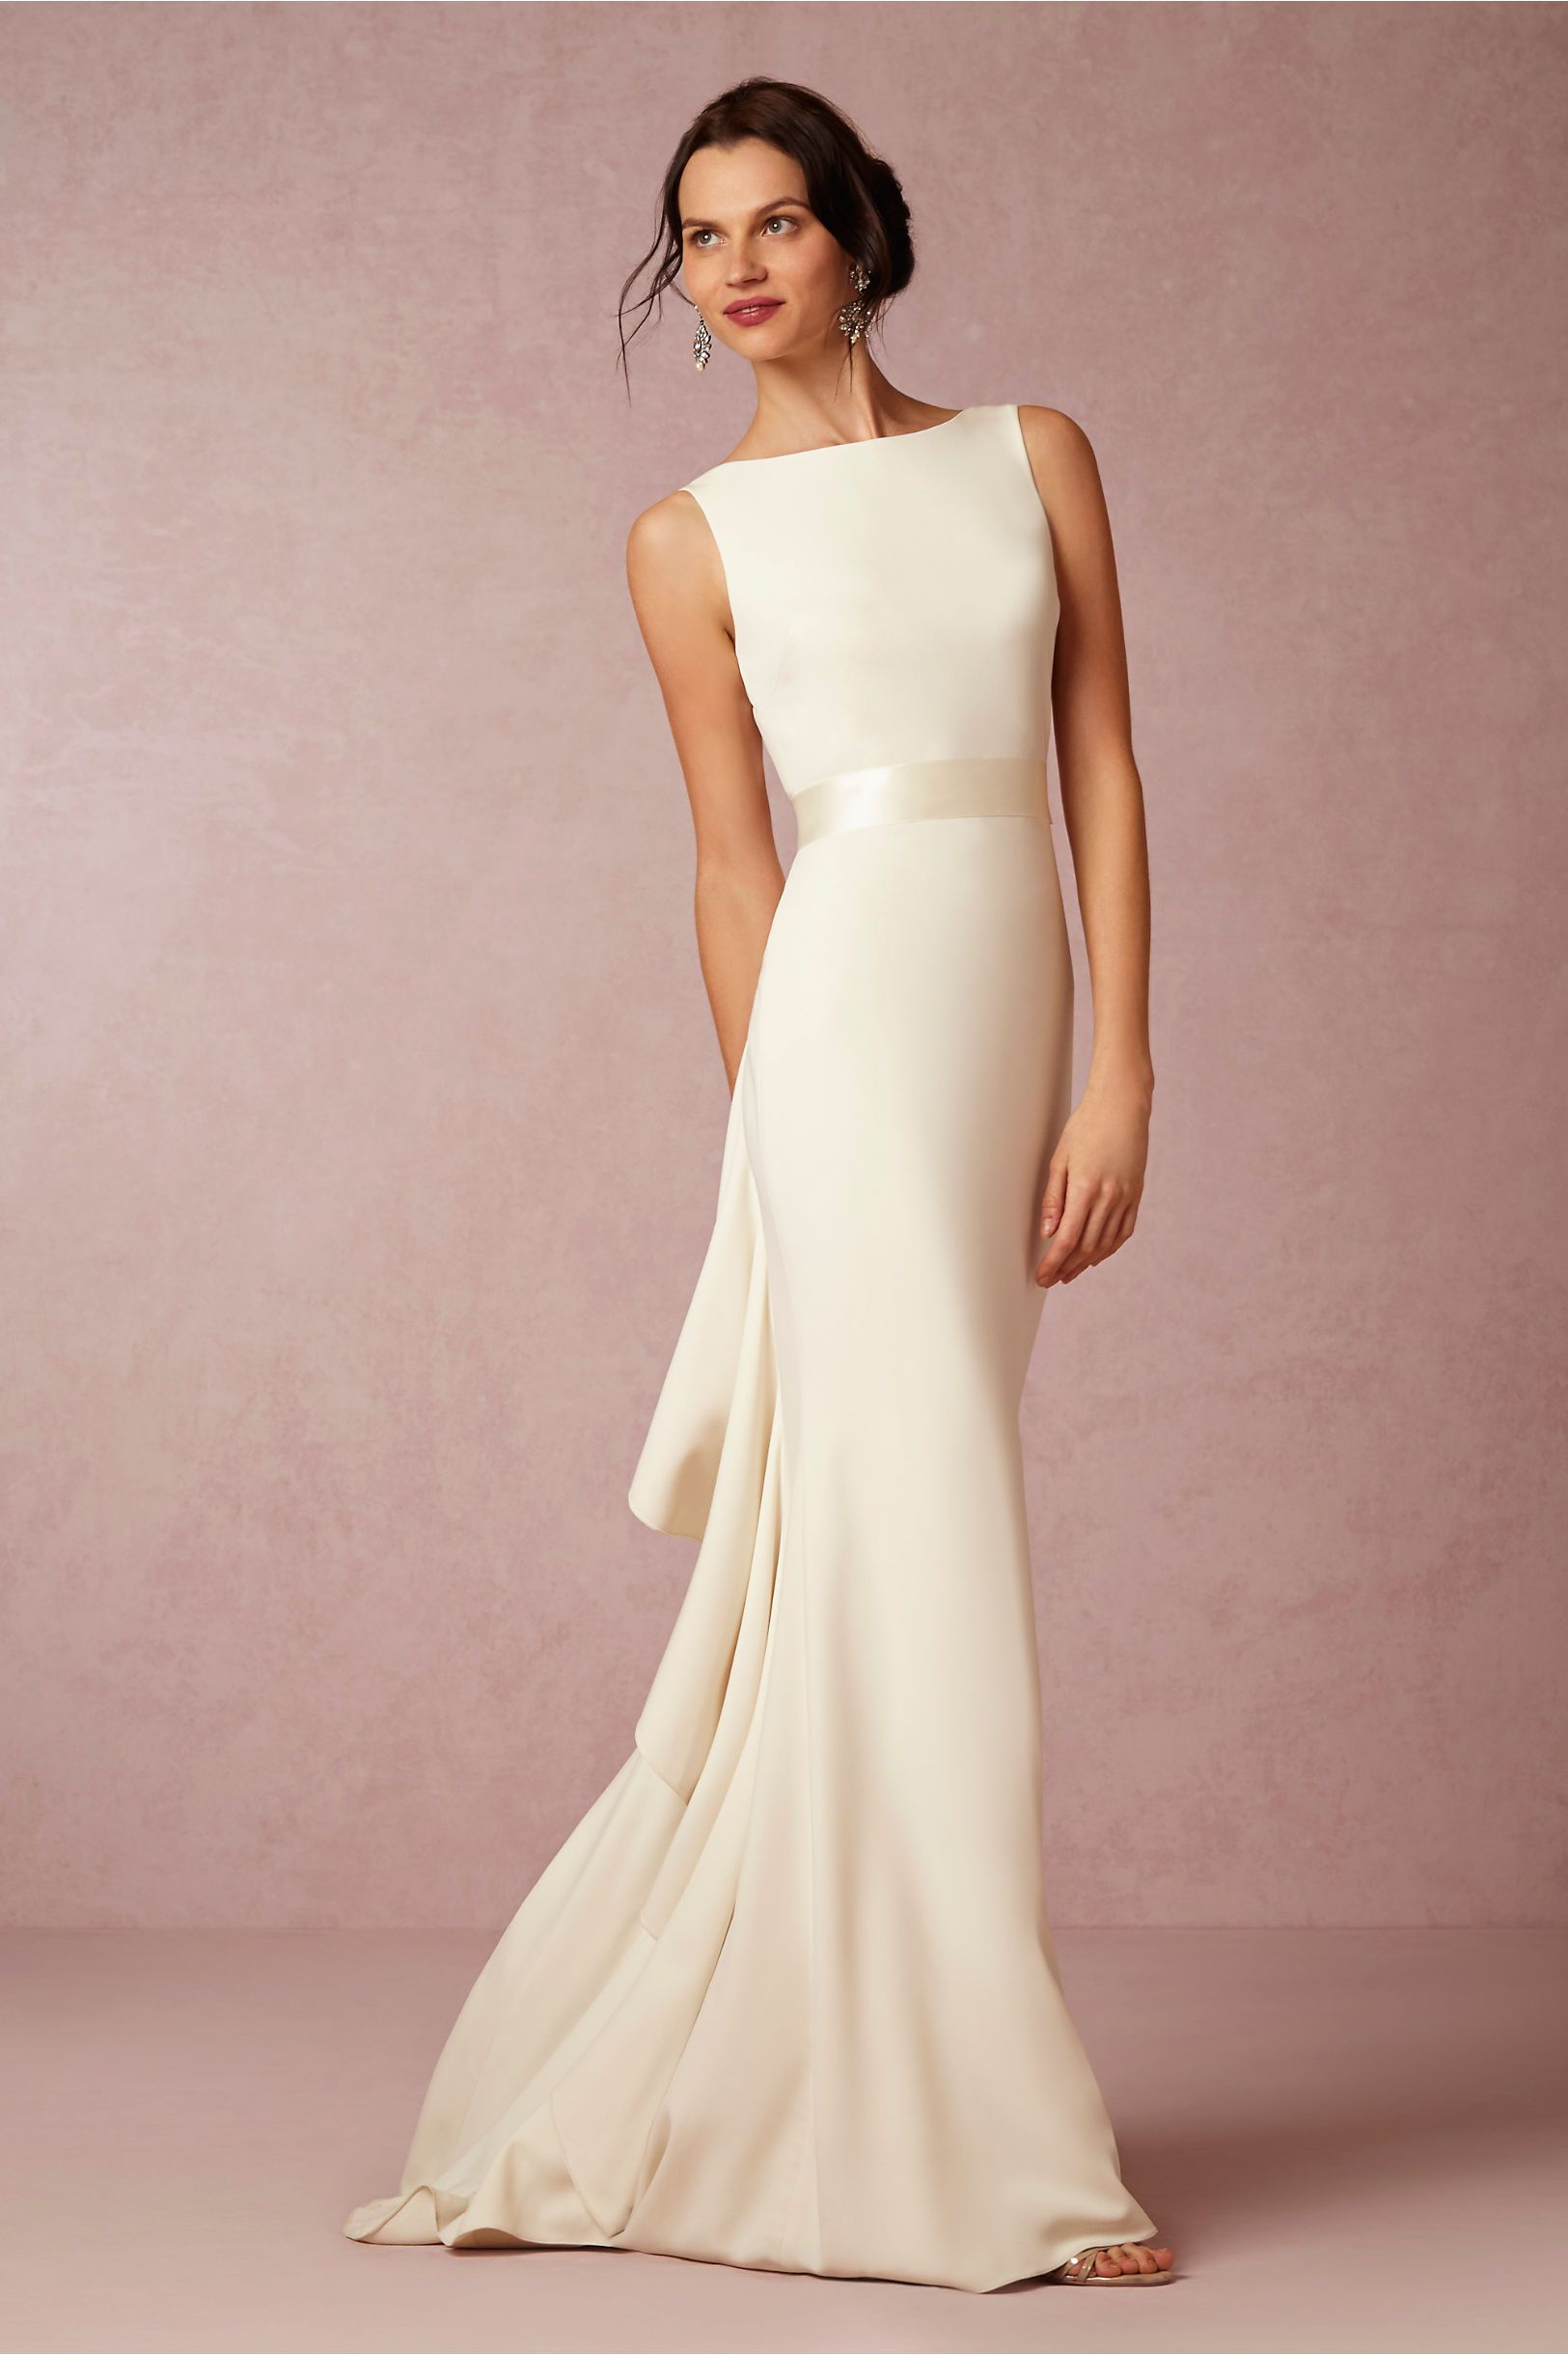 Cool BHLDN Valentina Gown with Sheer Elegance Best Choices of Sheath Wedding Dress EverAfterGuide